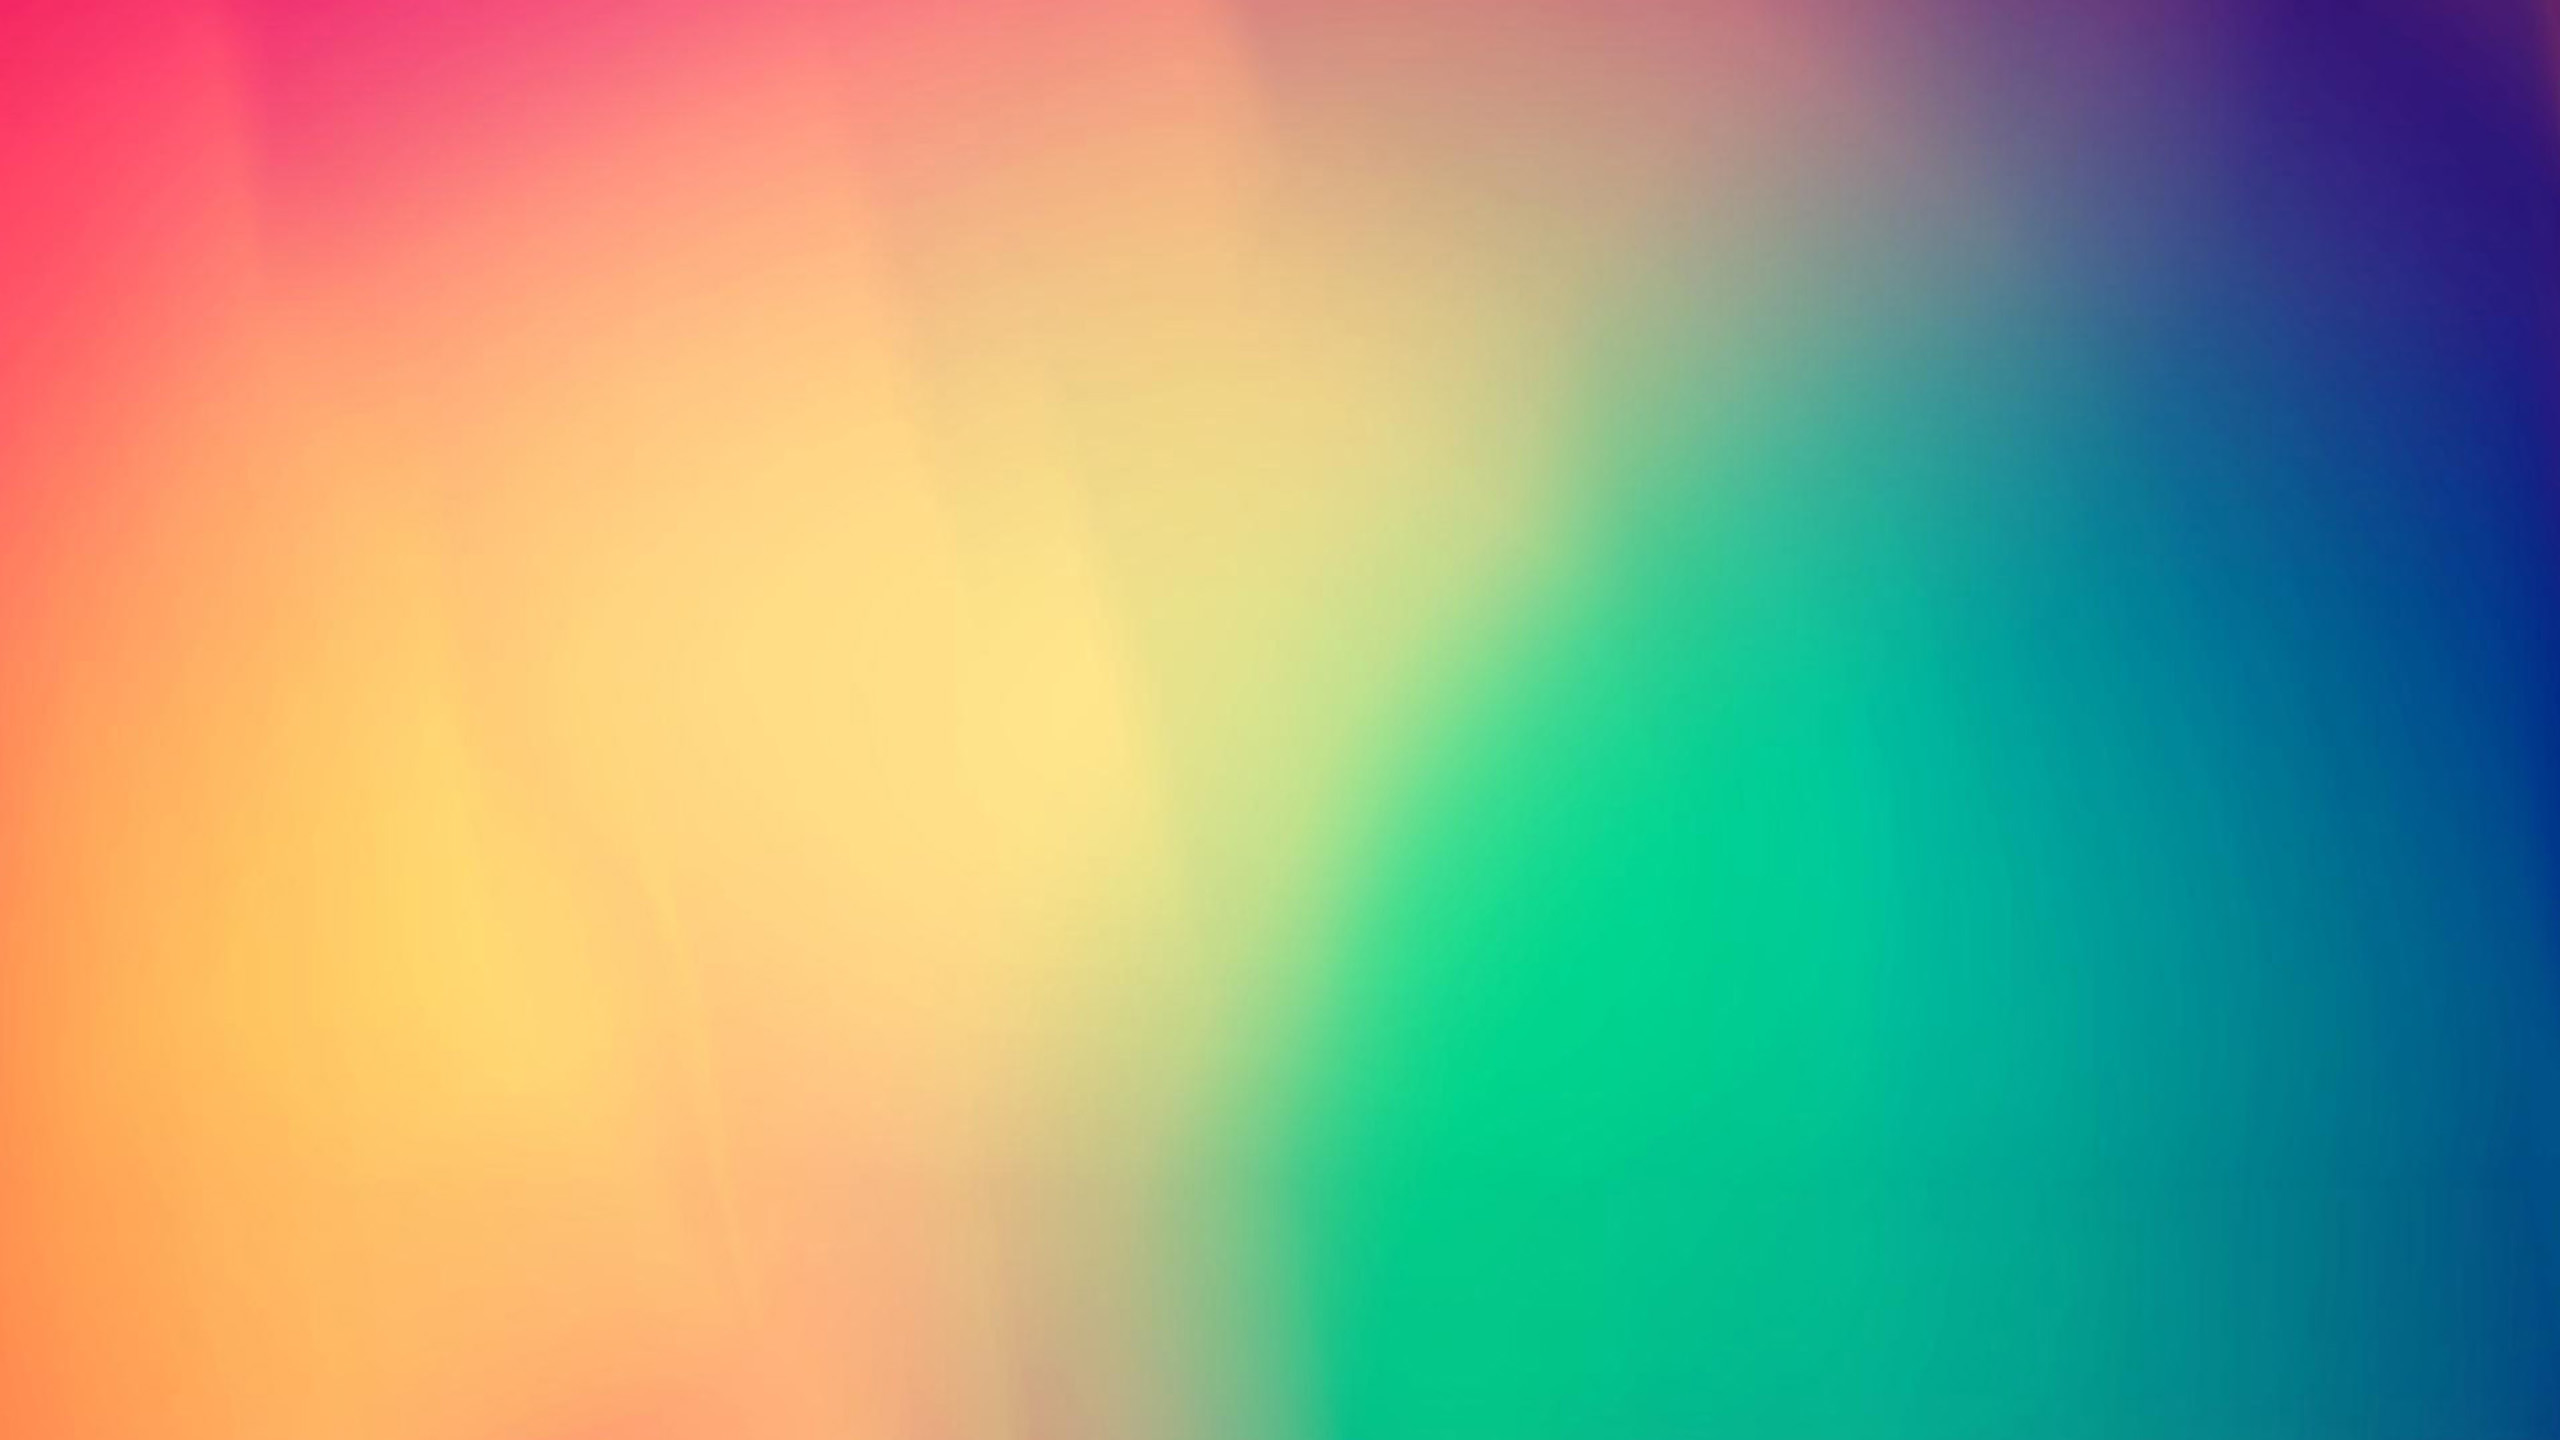 New 3d Wallpapers Free Download For Mobile Solid Color Backgrounds Pixelstalk Net